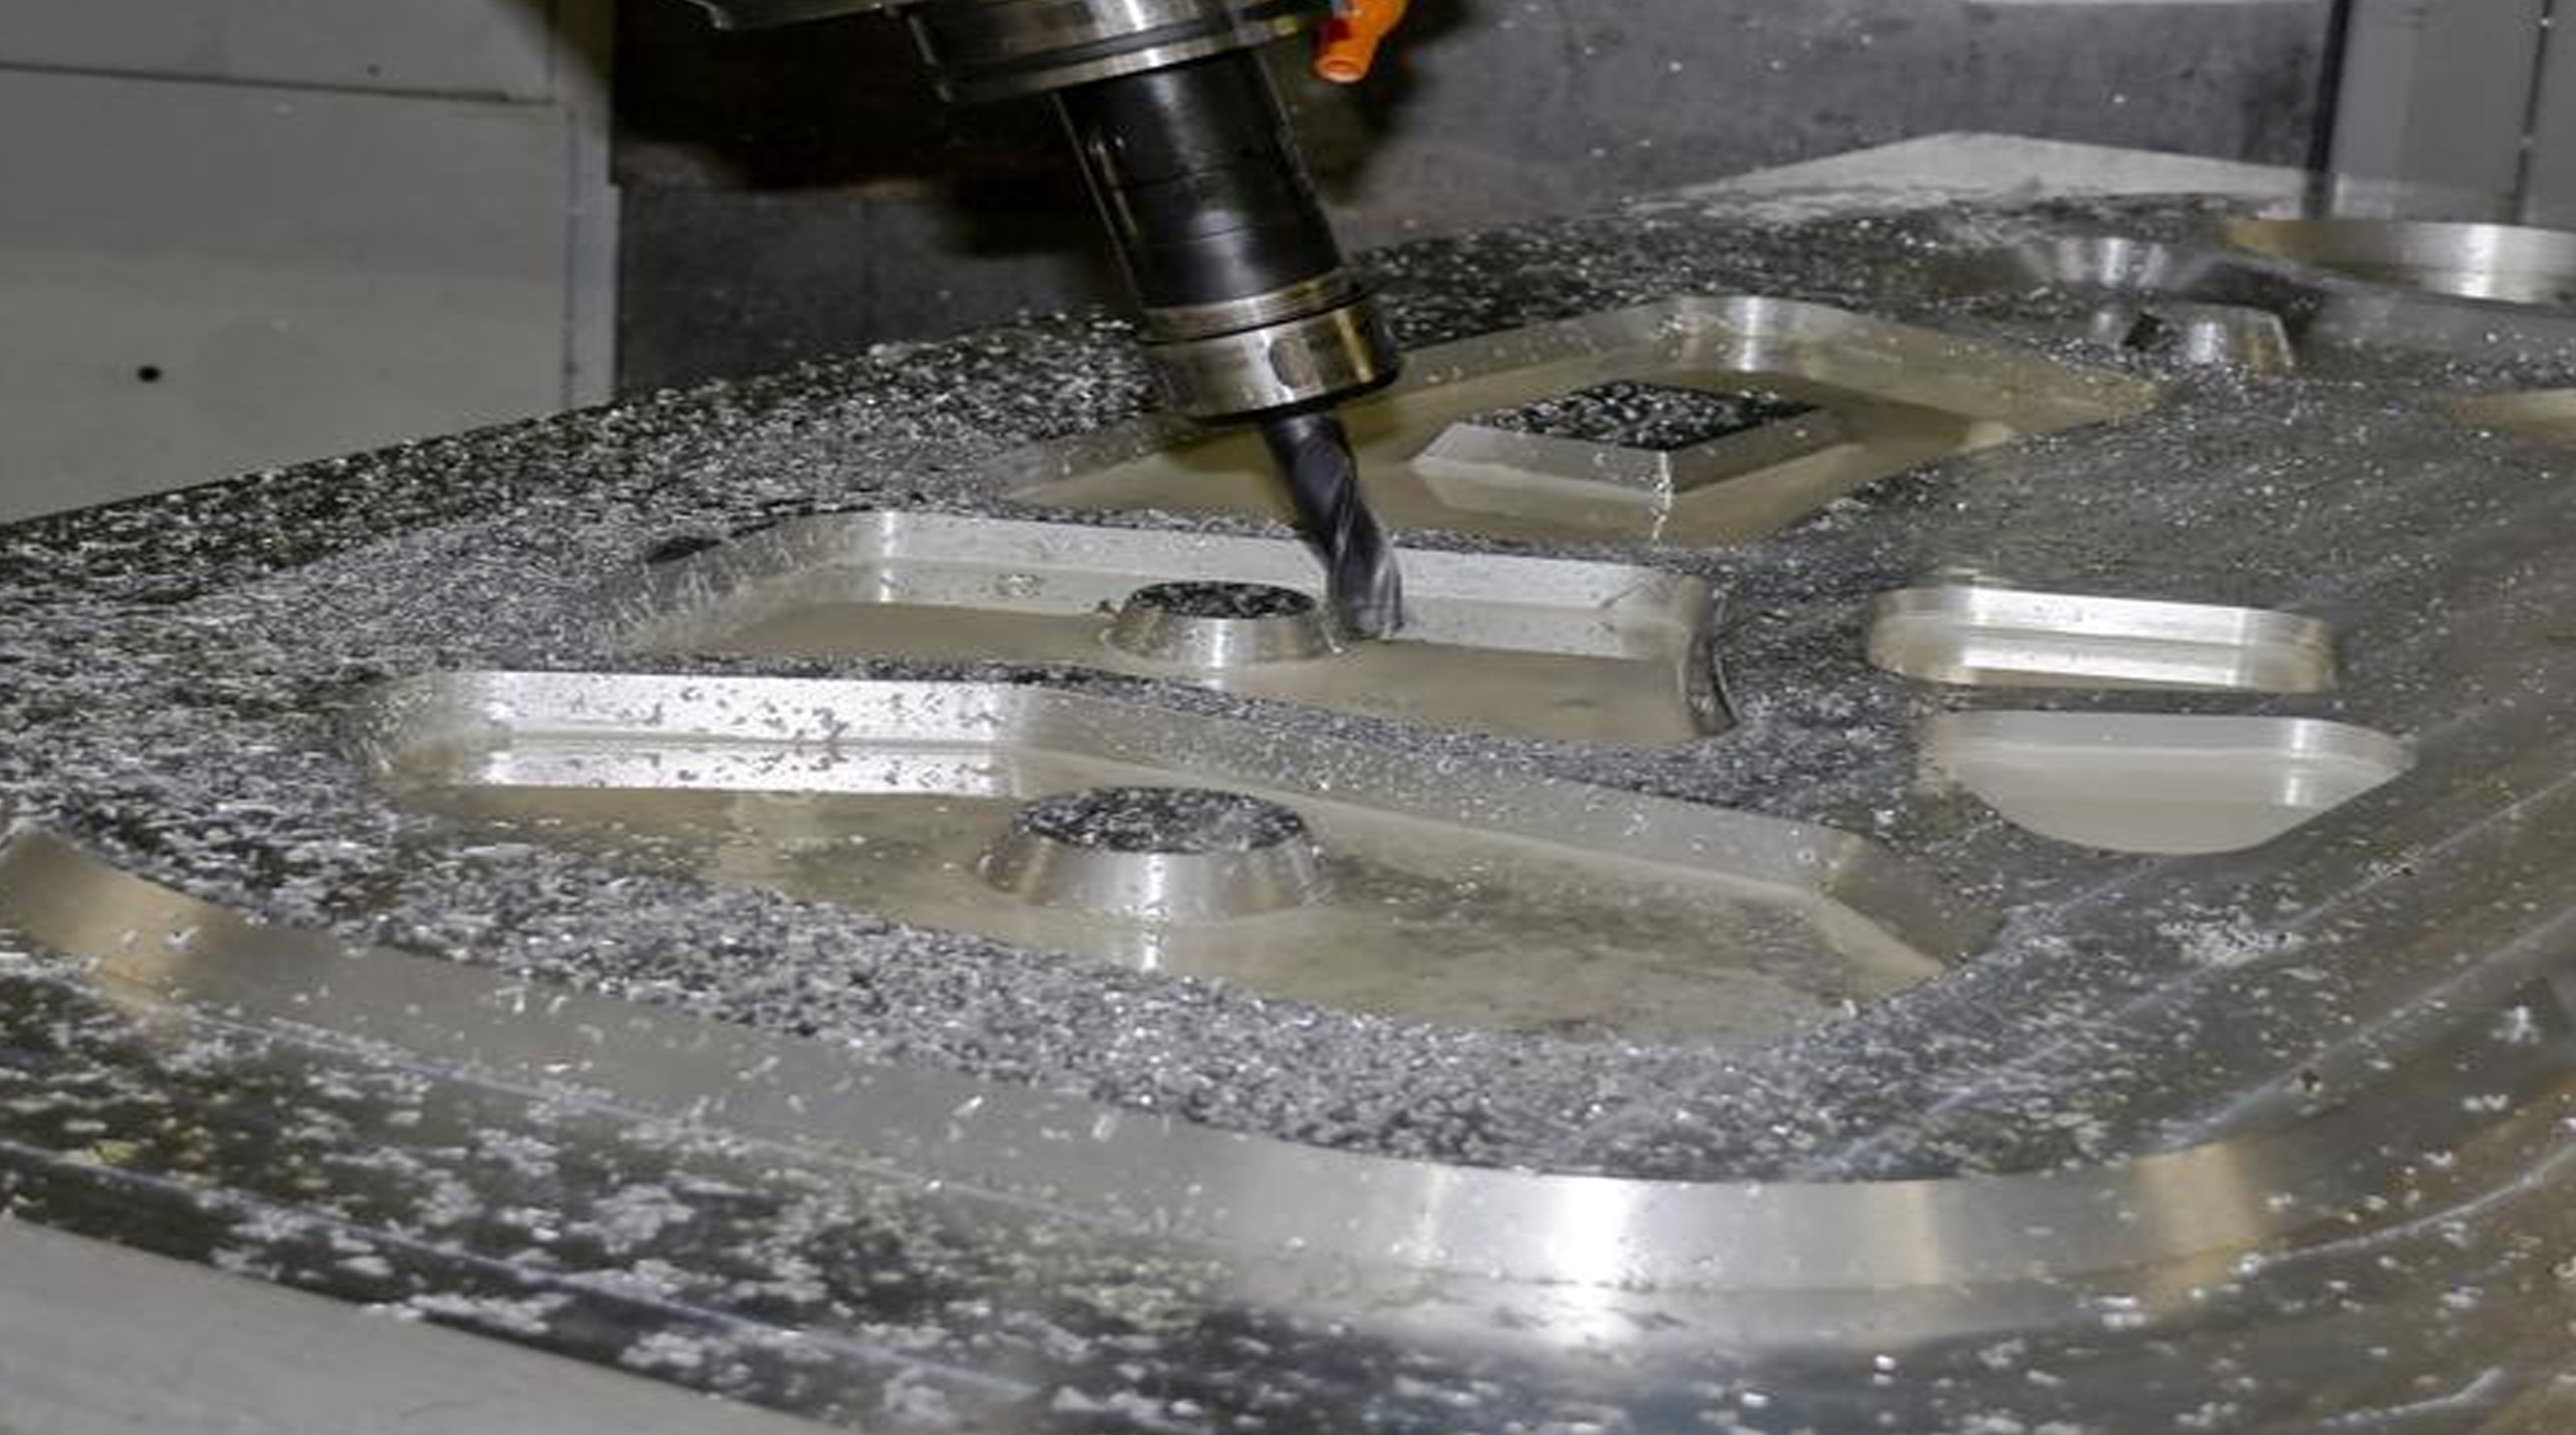 Avadium creating prototypes in CNC machine of metal, plastic, SLA, FDM, 3D printing, custom part fabrication